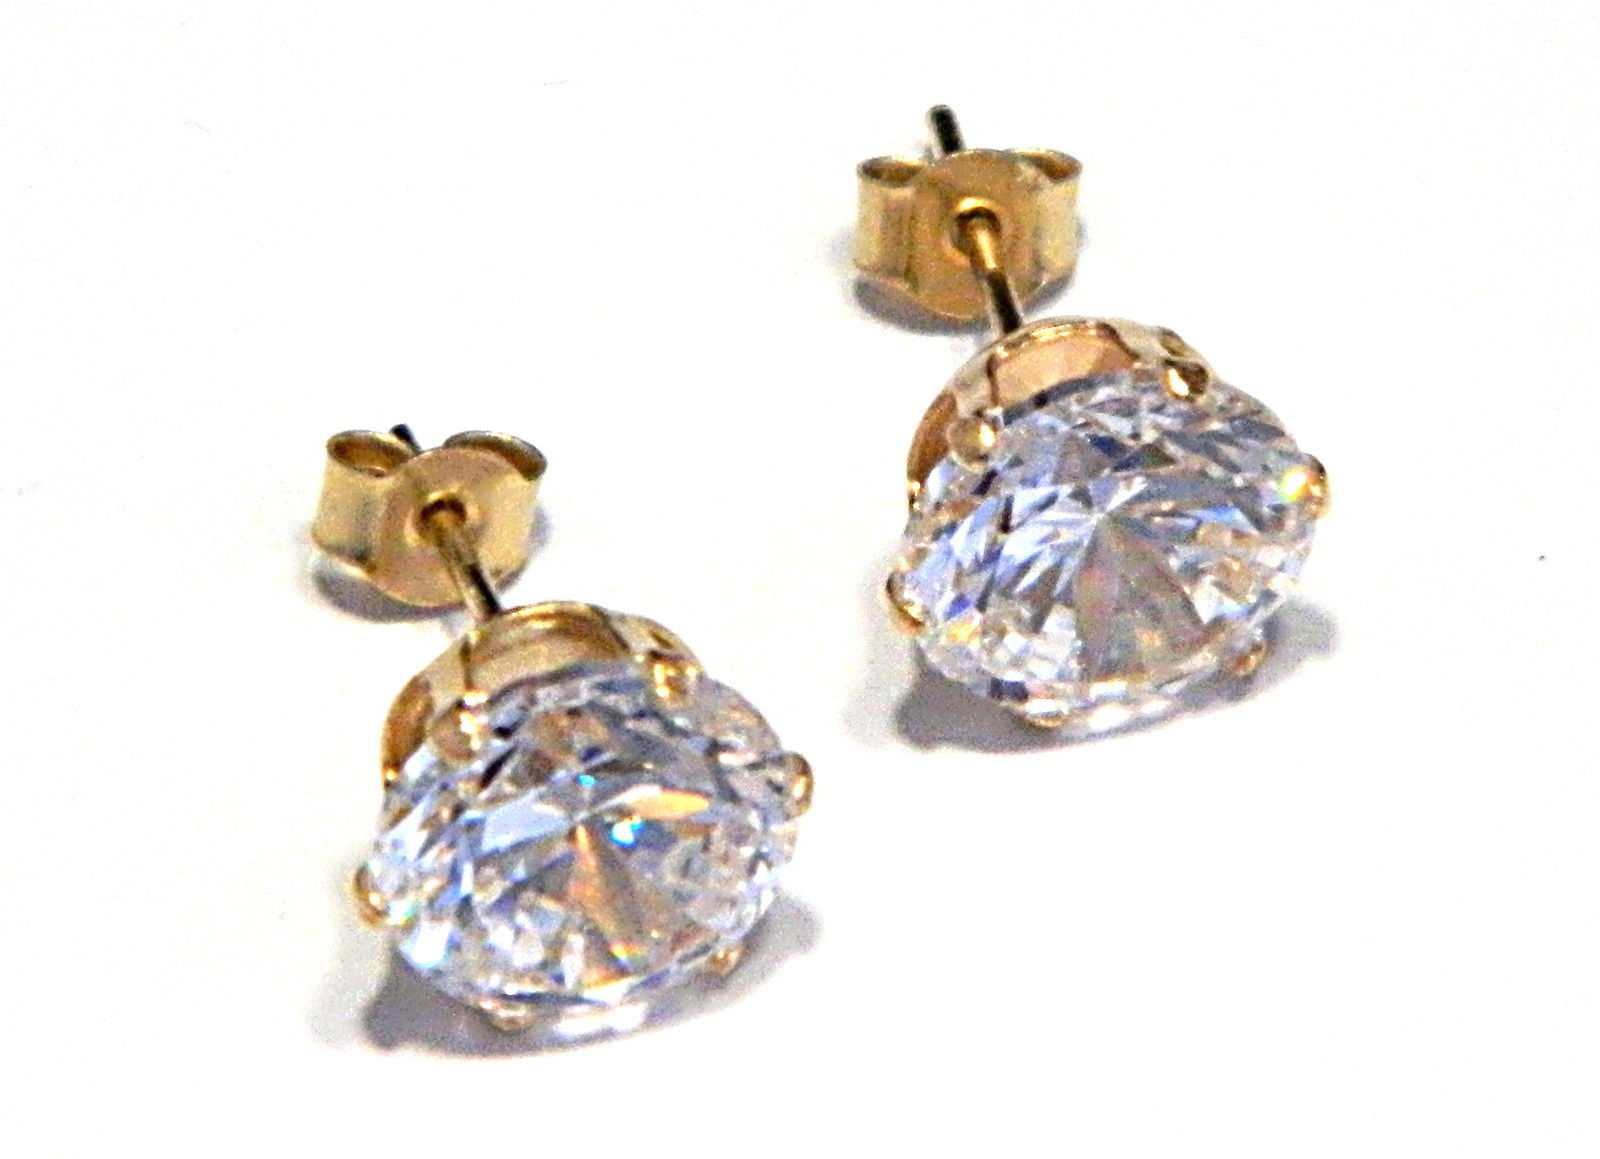 Arranview Jewellery 7mm CZ Stud Earring - 9ct Gold With Small (3mm) Butterfly Backs eUnh4